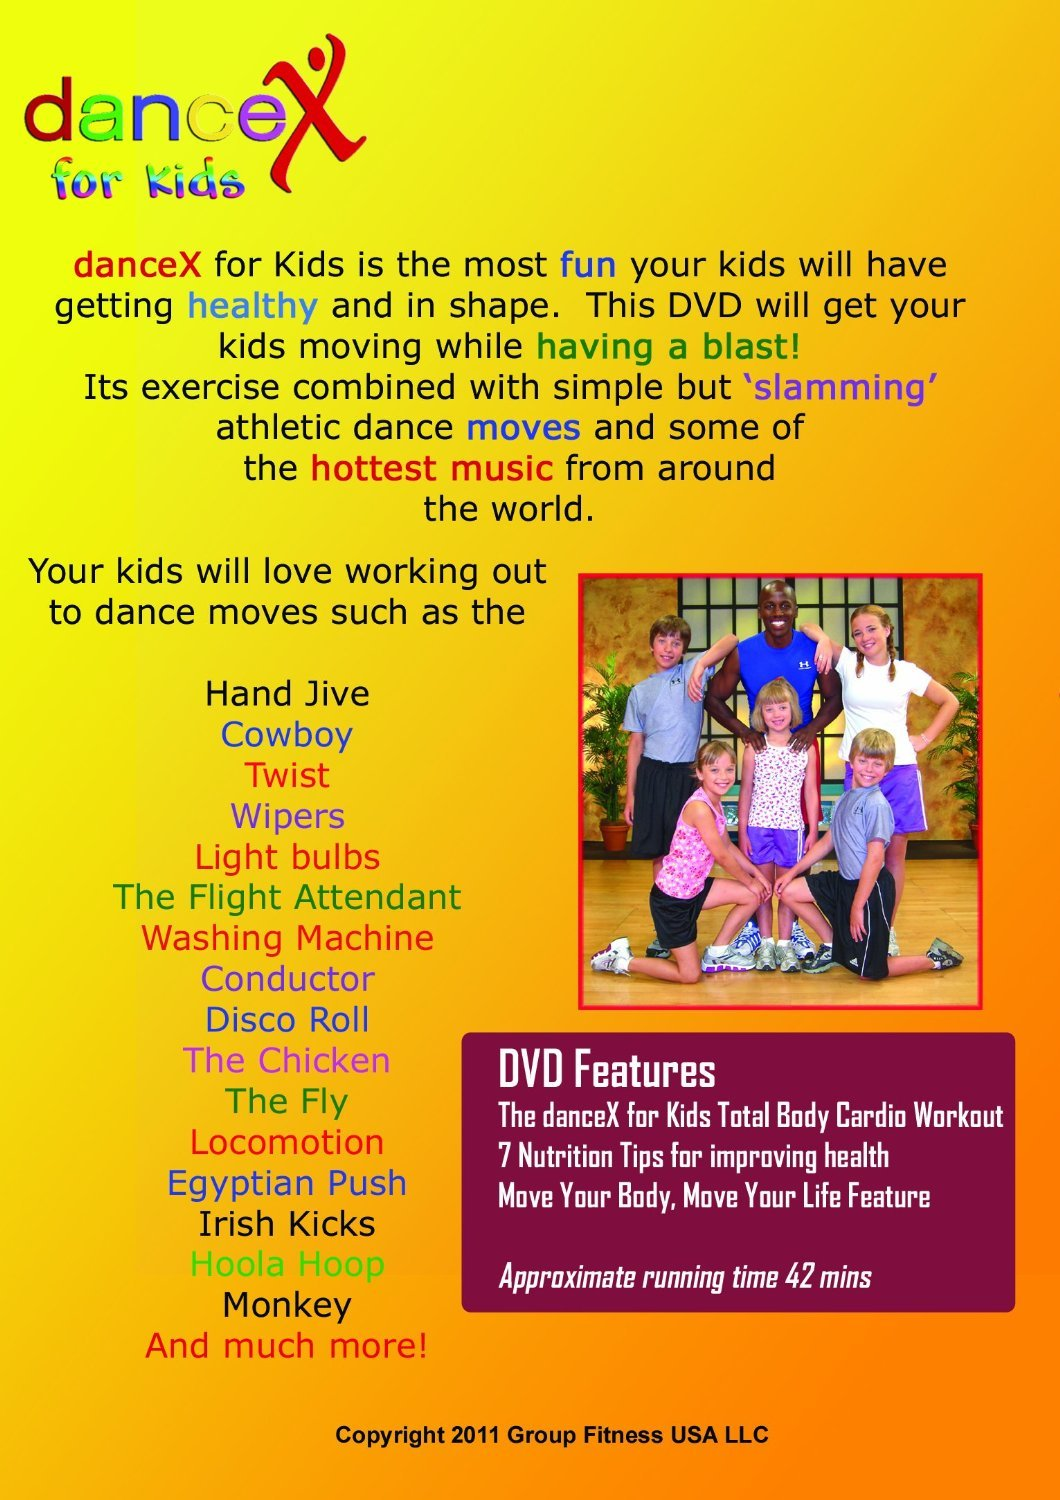 Dancex Fun Dance Exercise Dvd For Kids With Great January Indoor Workout Full Body Circuit Timed Music Ultimate Fitness And Video Sports